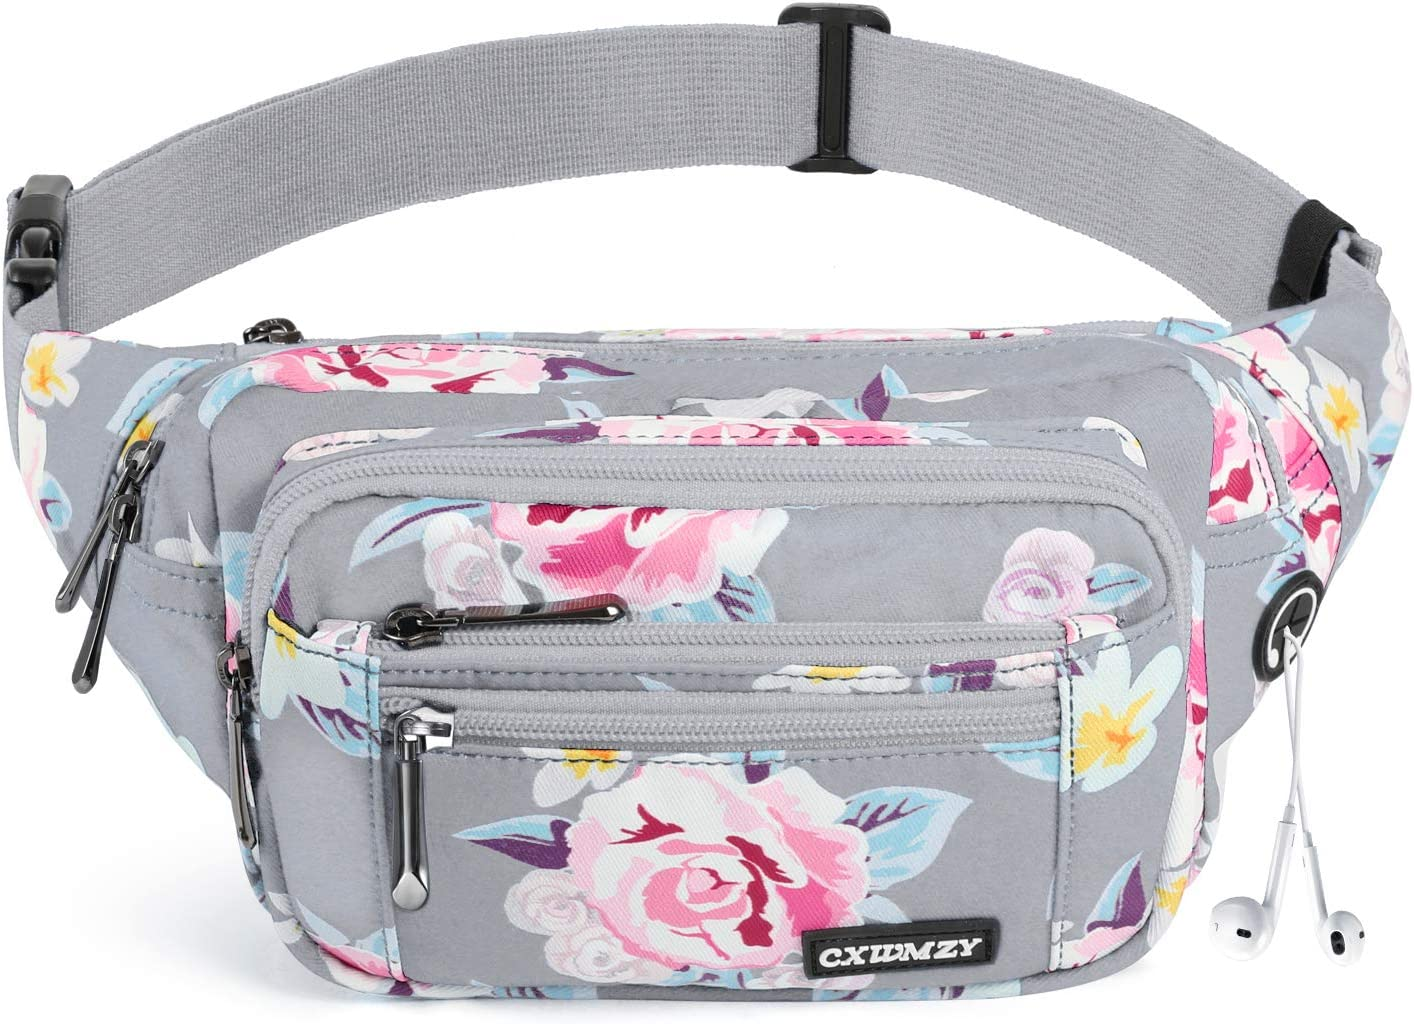 CXWMZY Waist Pack New product Bag Memphis Mall Fanny for MenWomen Hip with Bum